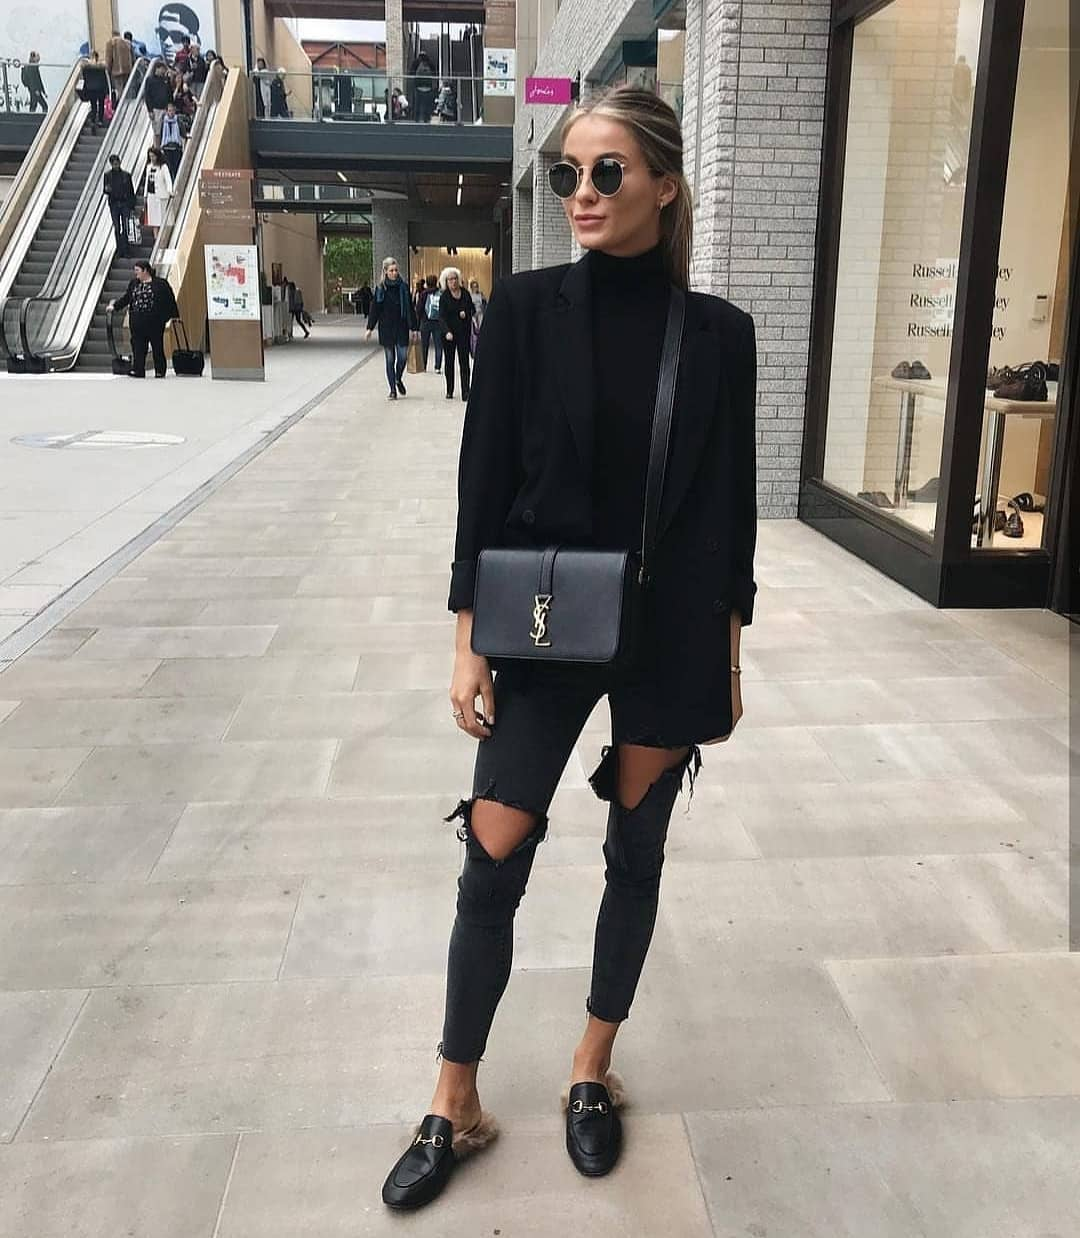 All Black Spring Outfit Idea With Black Blazer And Knee Ripped Jeans 2019